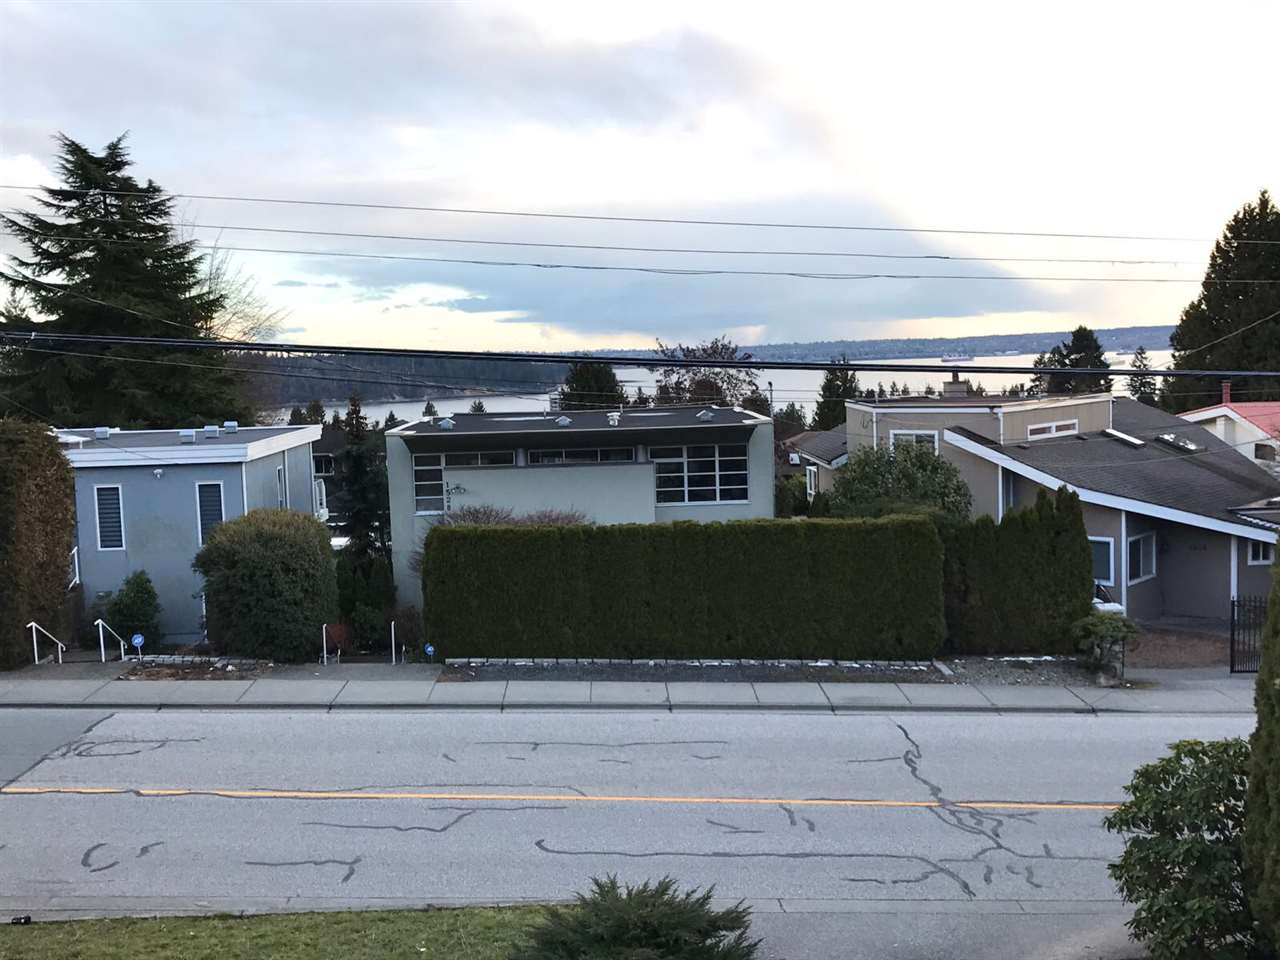 Convenient Ambleside area with city and water view.  South facing beautiful lot with laneway access.  Features include hardwood and slate flooring.  Solid, but needs renovation or plan for a rebuild.  Fabulous location to build your dream house or great holding property.